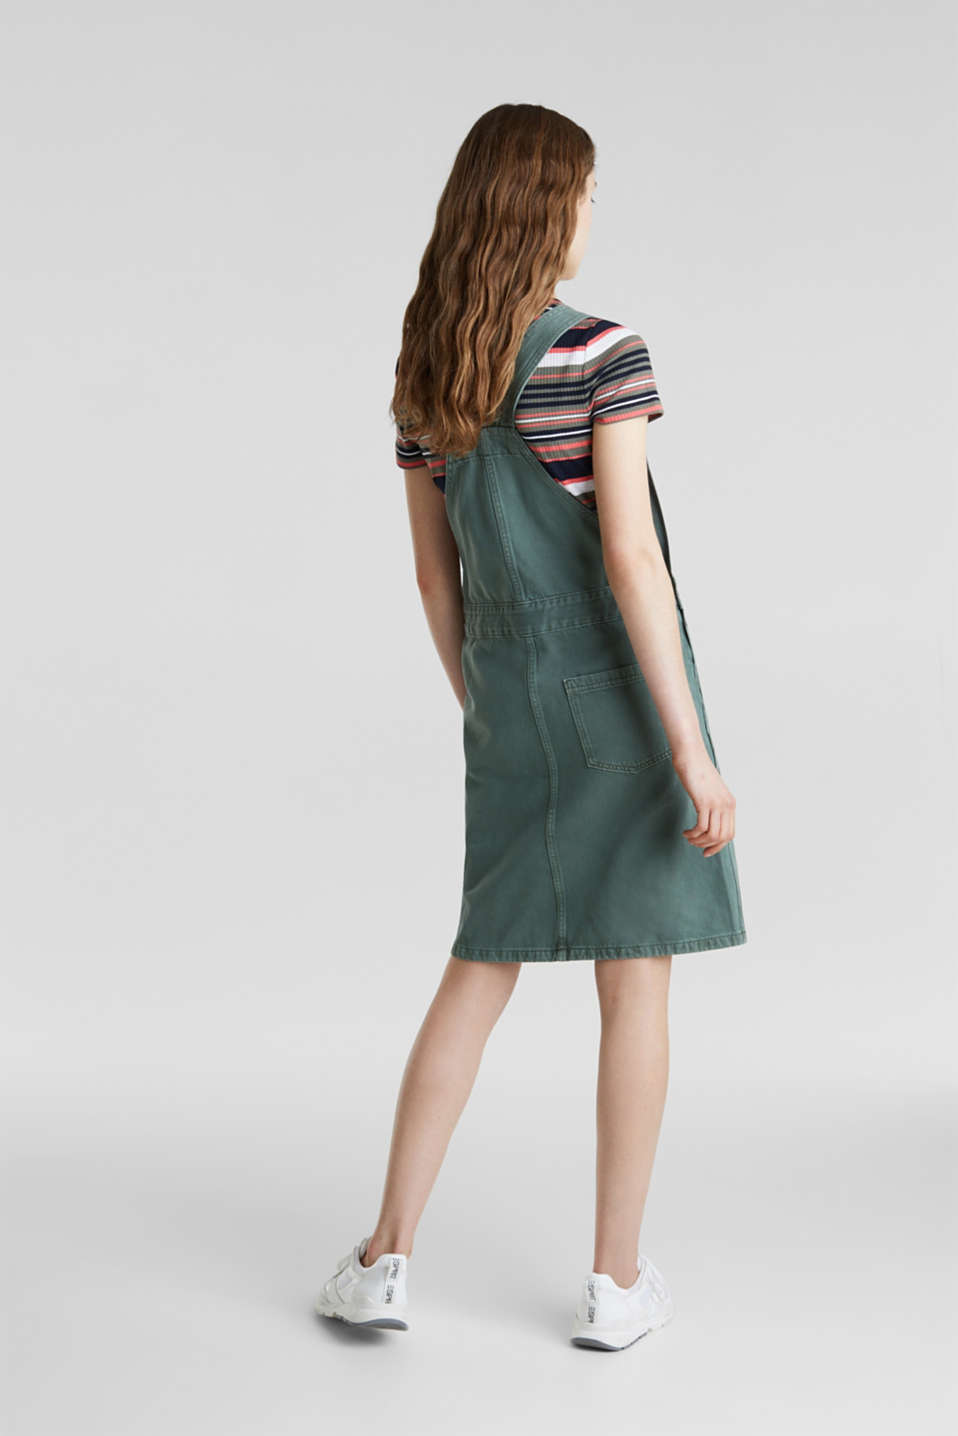 Dungaree skirt with breast pocket, KHAKI GREEN, detail image number 3